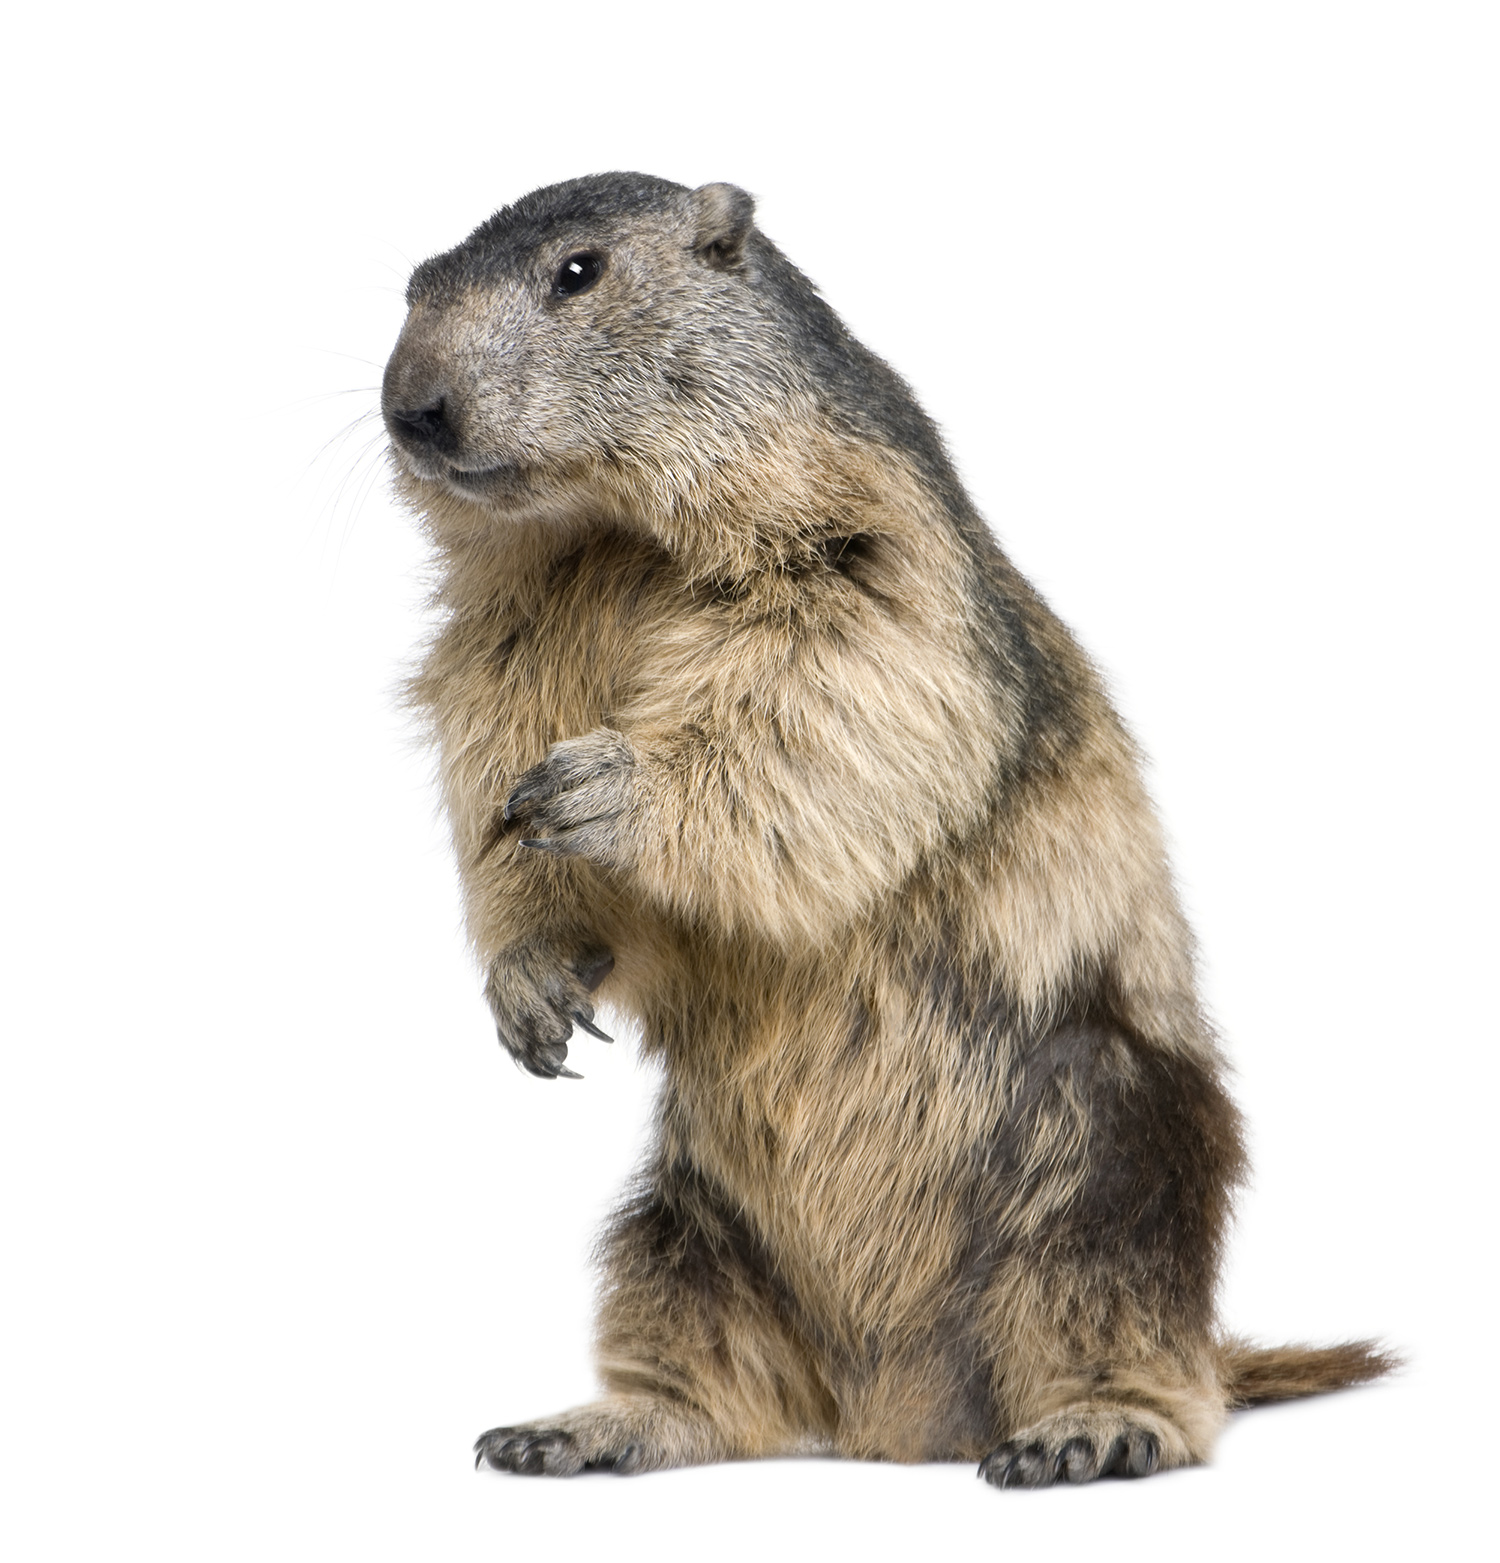 groundhog standing up - Groundhog Images PNG HD